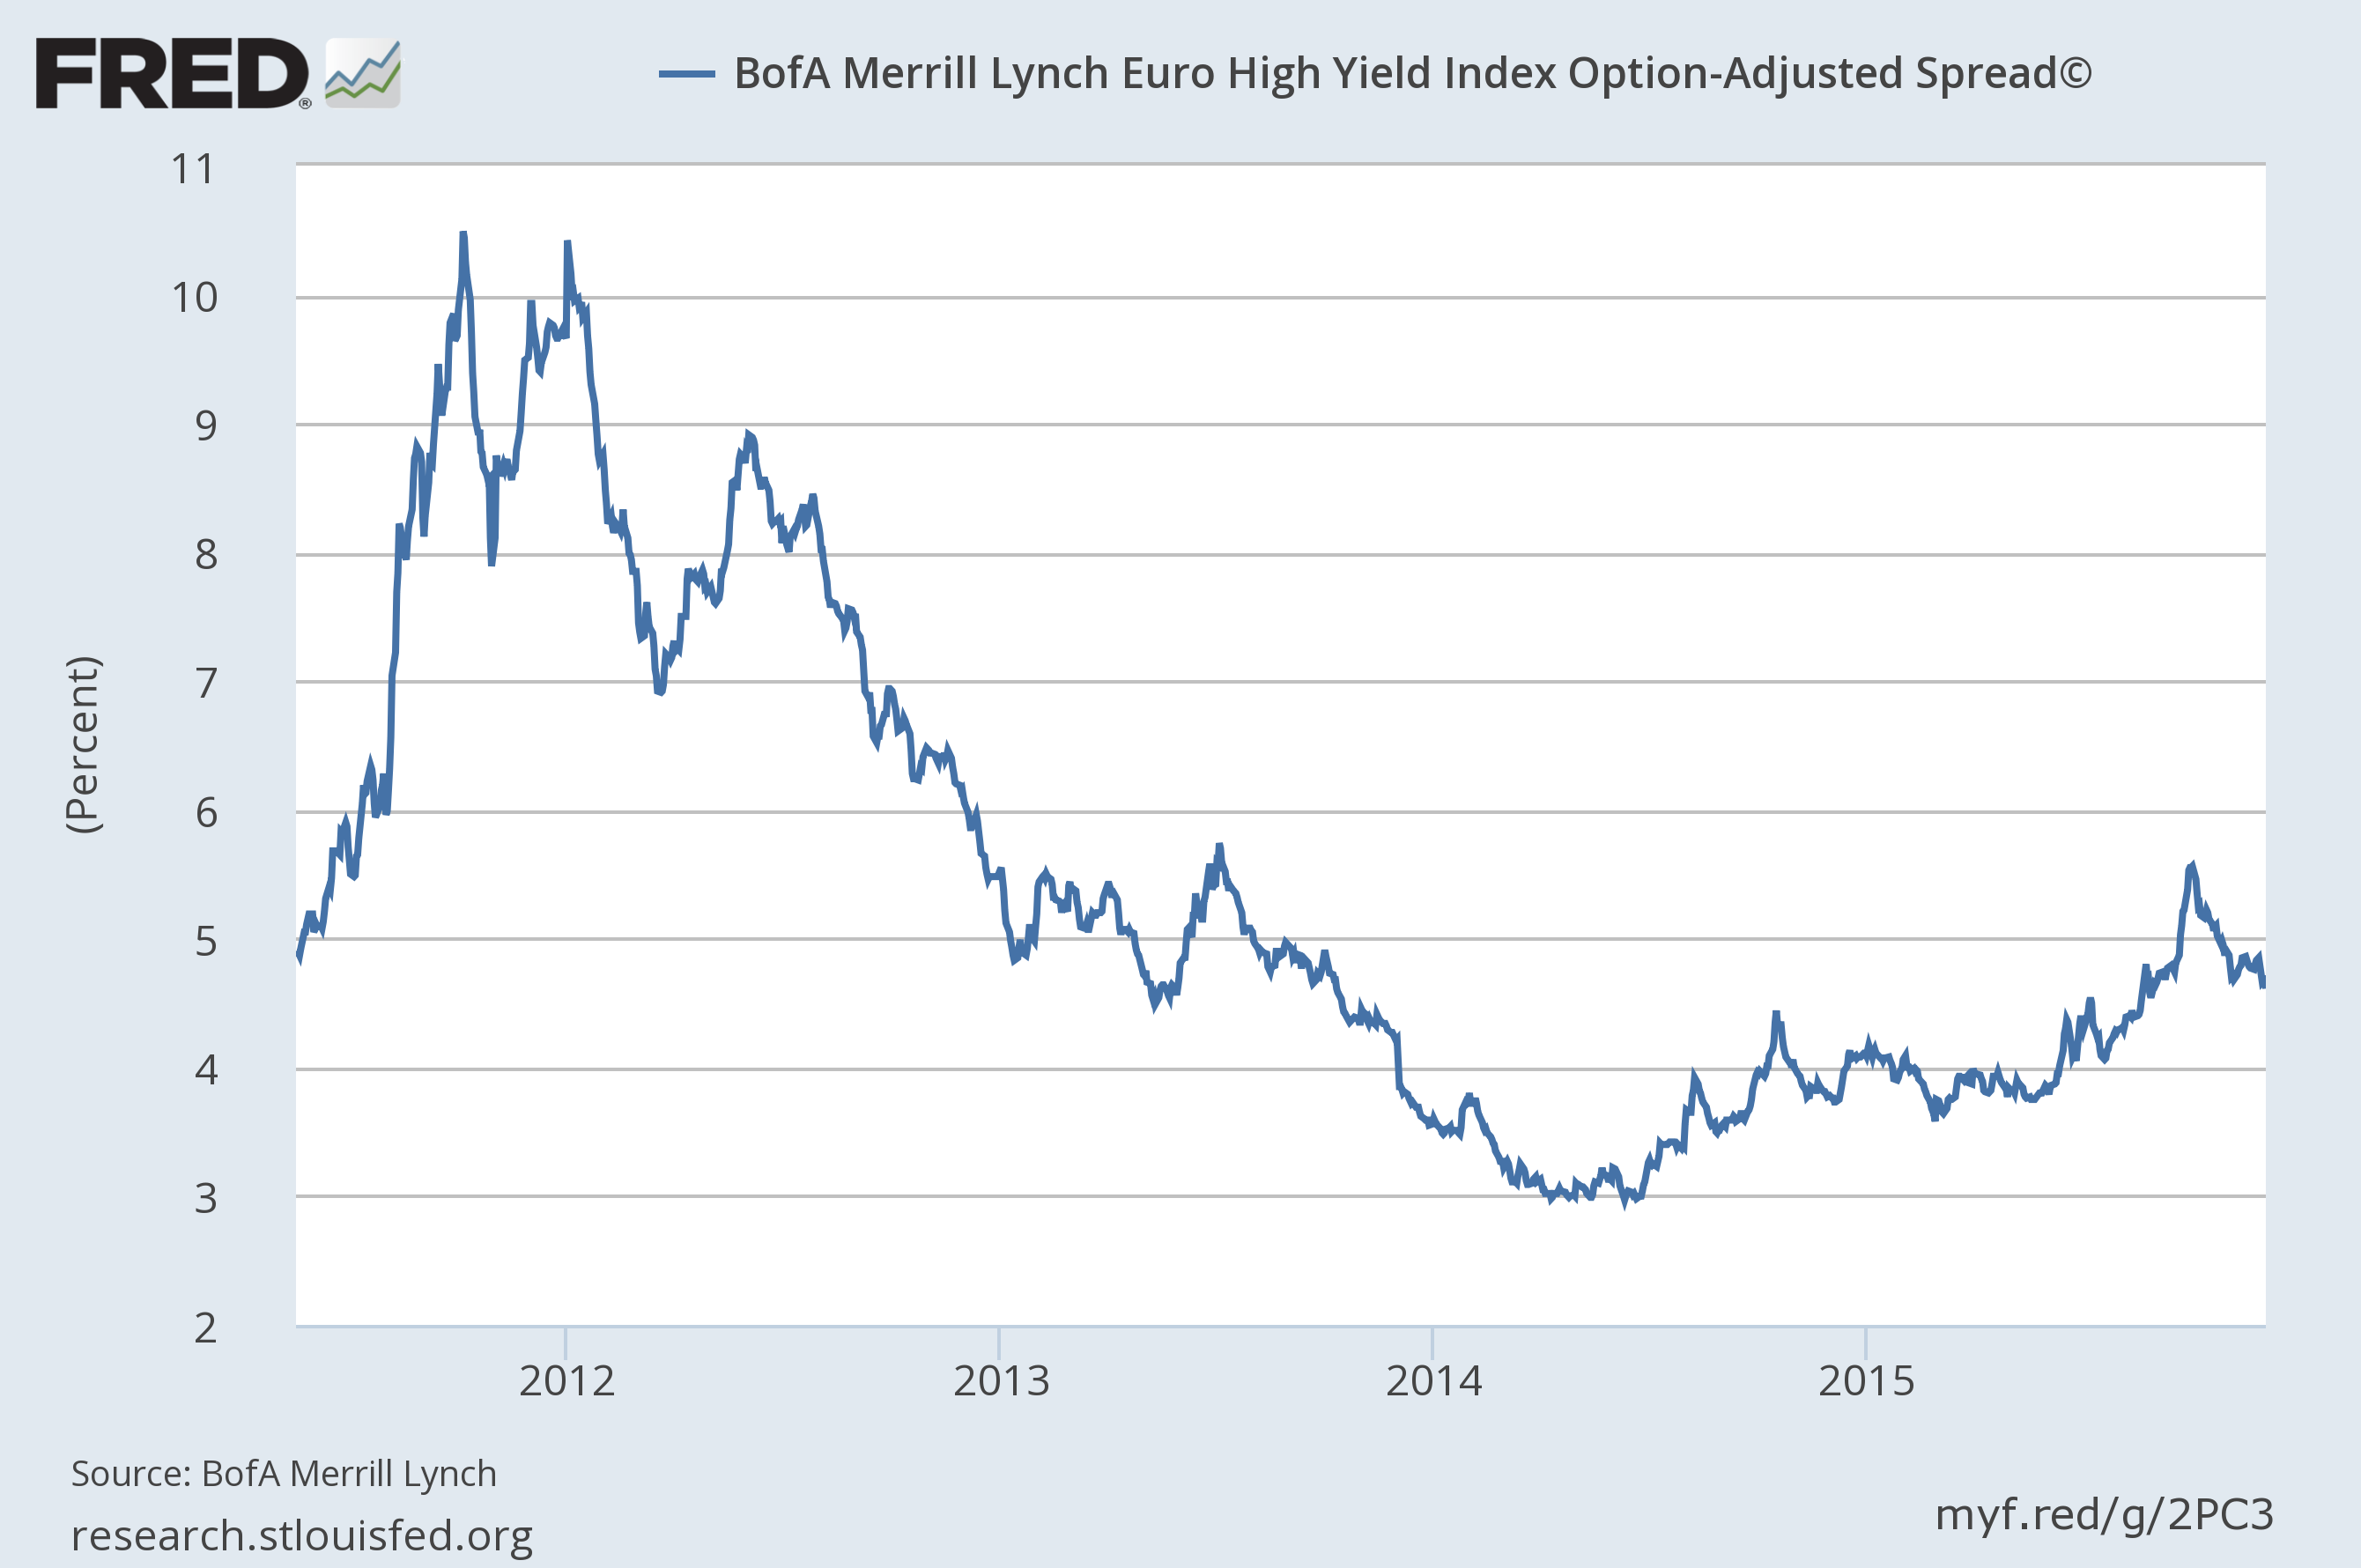 euro hy spreads